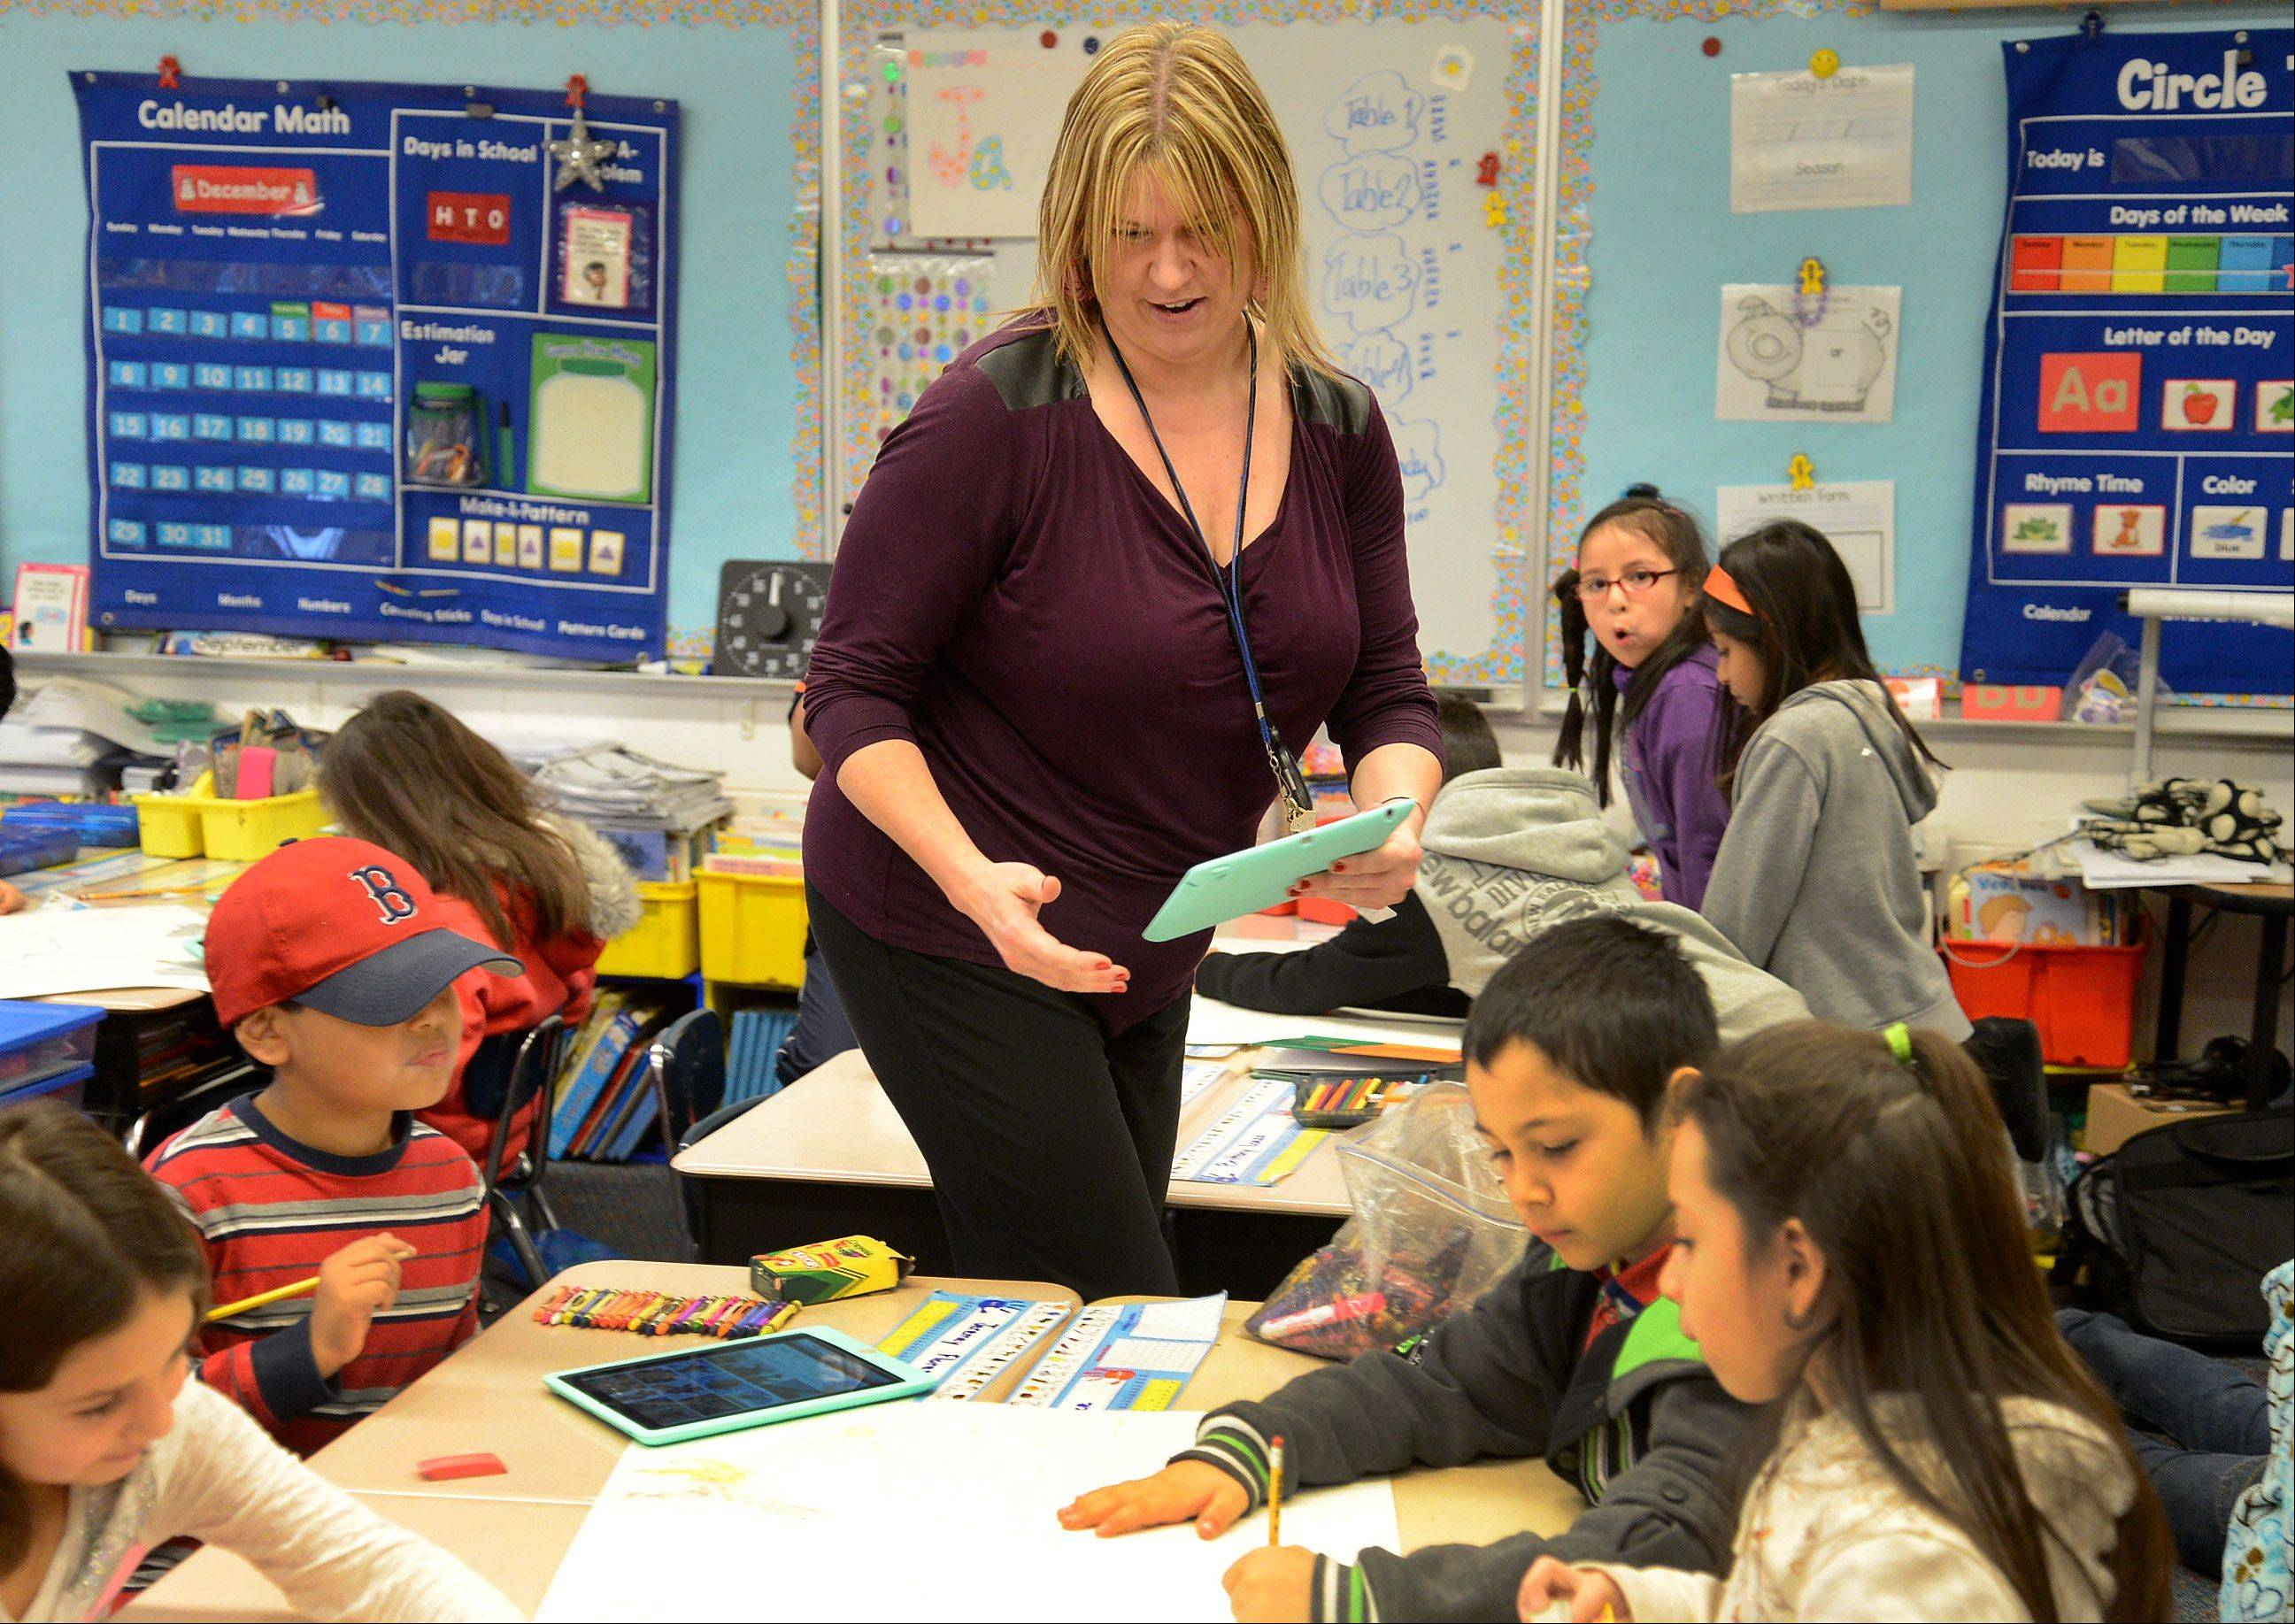 Jacque Erickson teaches a bilingual class of first- and second-grade students at Jane Addams Elementary School in Palatine.